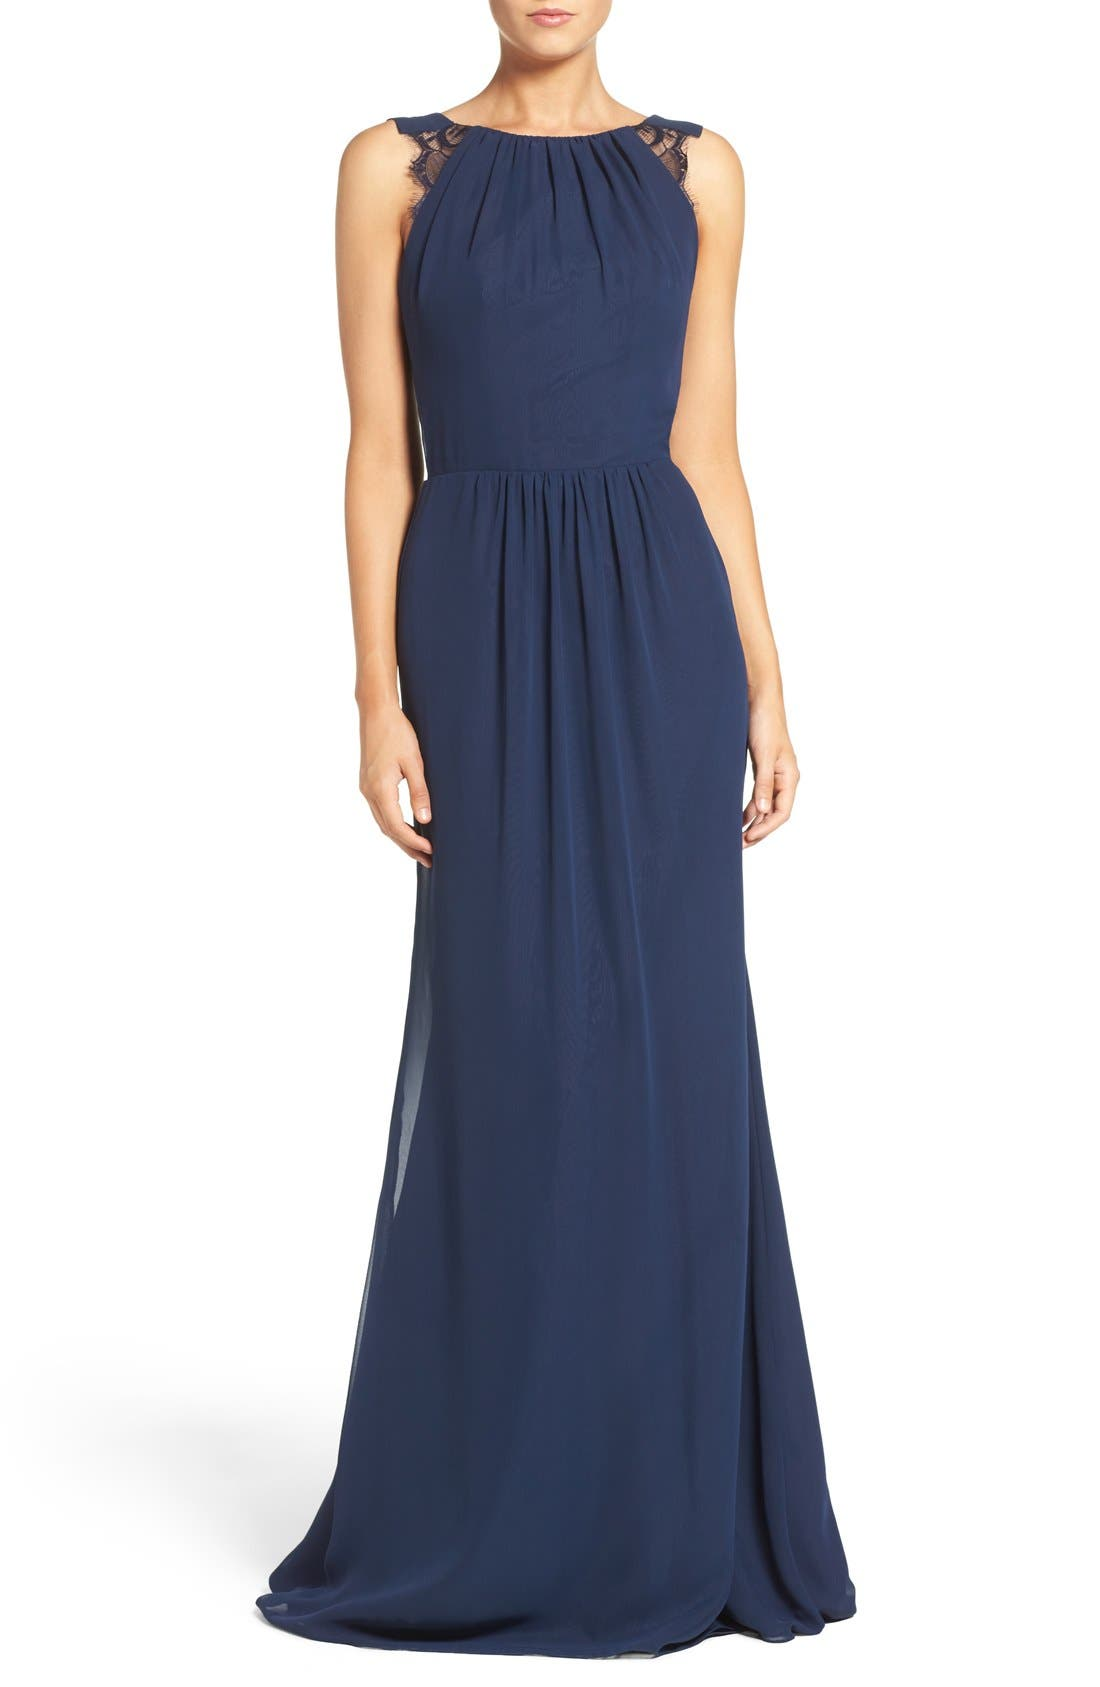 Alternate Image 1 Selected - Hayley Paige Occasions Lace Strap Gathered Chiffon Gown